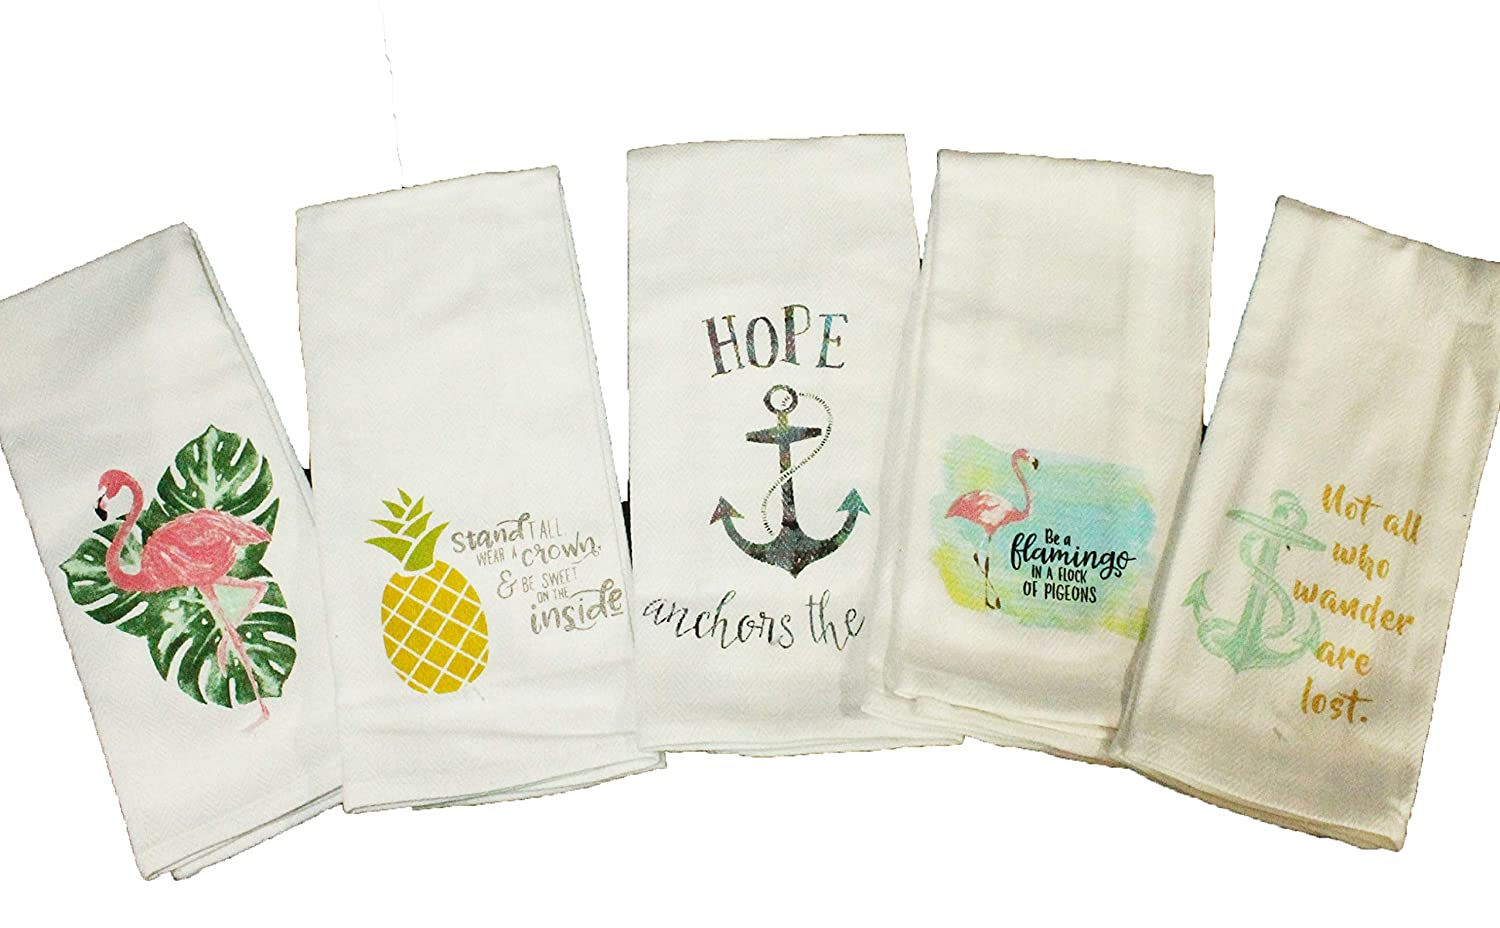 Anchors Cute Set of 5 Beach Tropical Kitchen Towels Gift Set Comes in Organza Gift Bag Flamingoes and Pineapple Designs Colorful and Funny for Summer